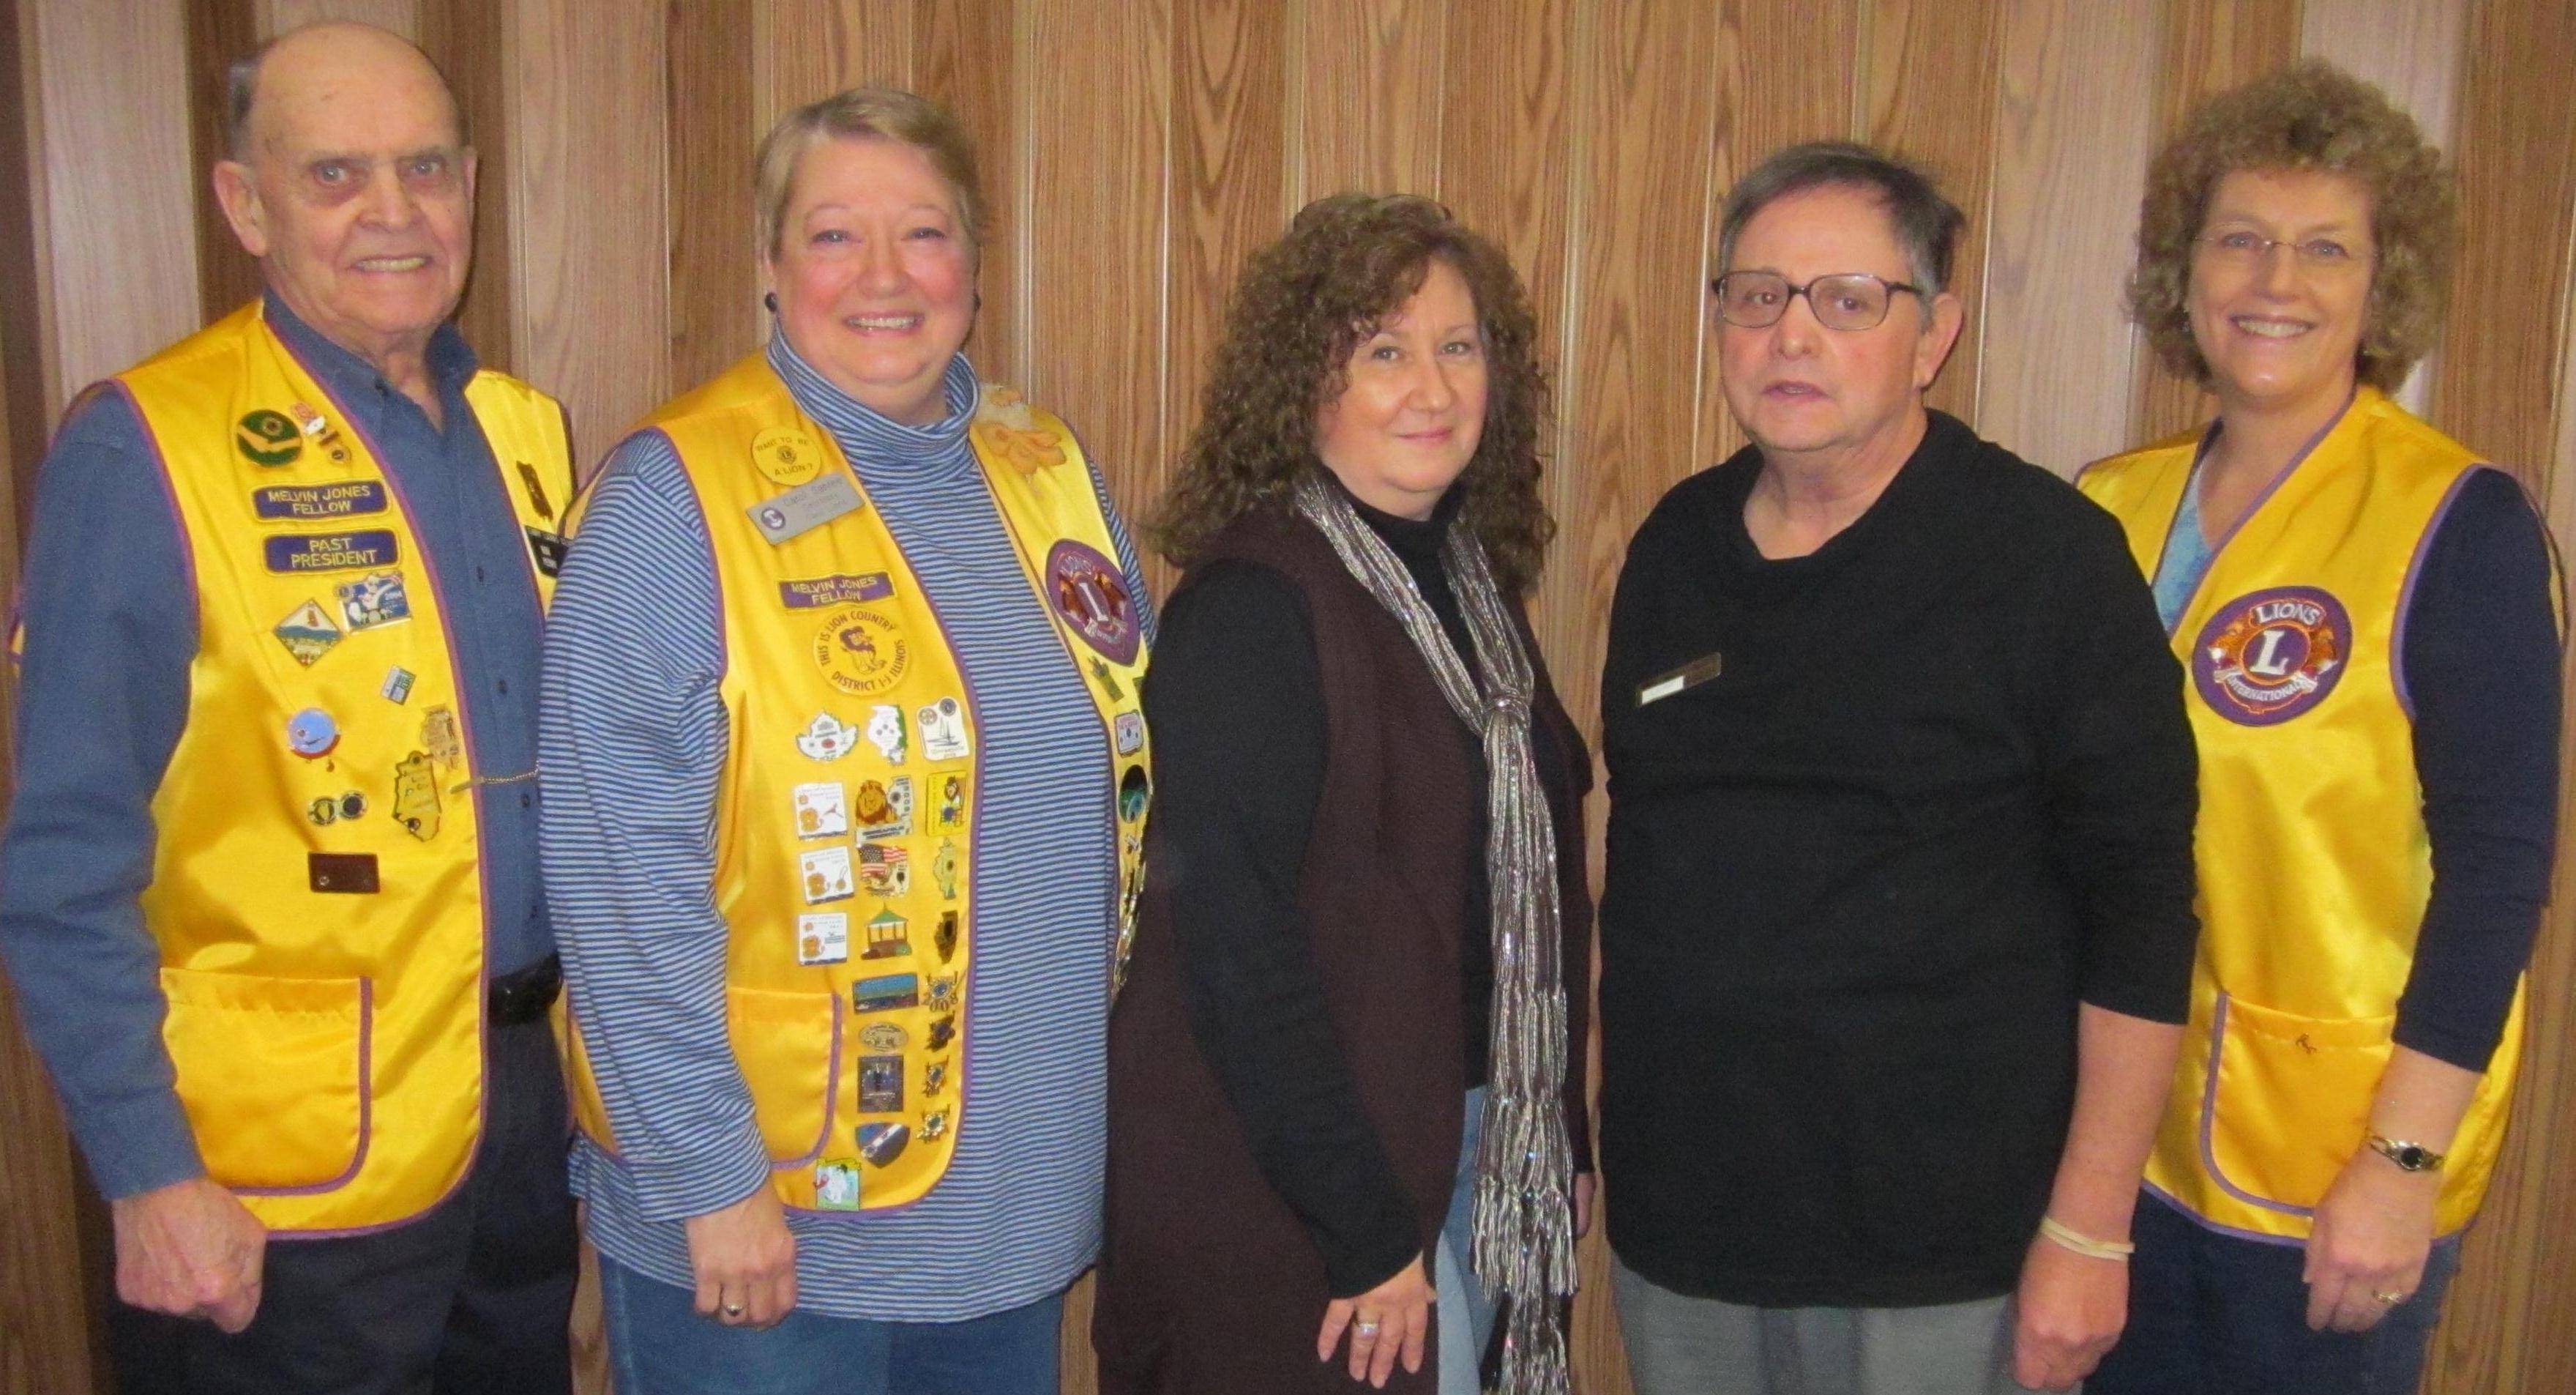 Pictured from left are Lions Bob Perry (45 years), Carol Santee (35 years), Angie Keys (25 years), Jeff Cooper (30 years) and Kathy Young (25 years)